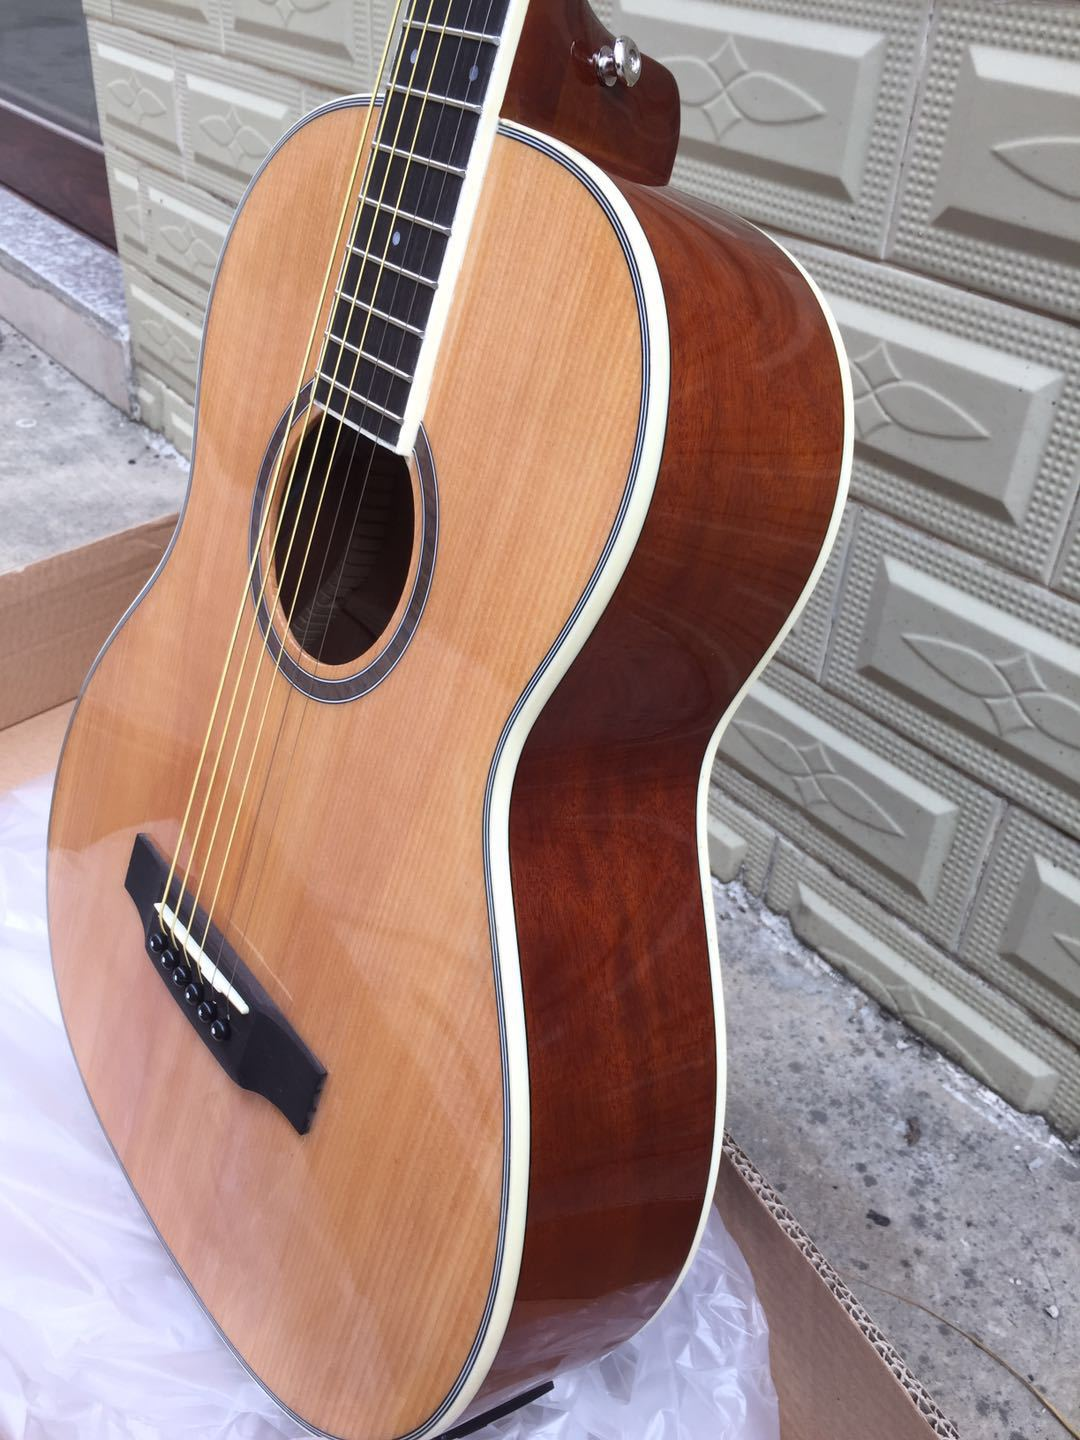 <font><b>Guitar</b></font> <font><b>36</b></font>-Inch Light Spruce Veneer Folk Music Wood <font><b>Guitar</b></font> Musical Instrument Small <font><b>Guitar</b></font> Wholesale image